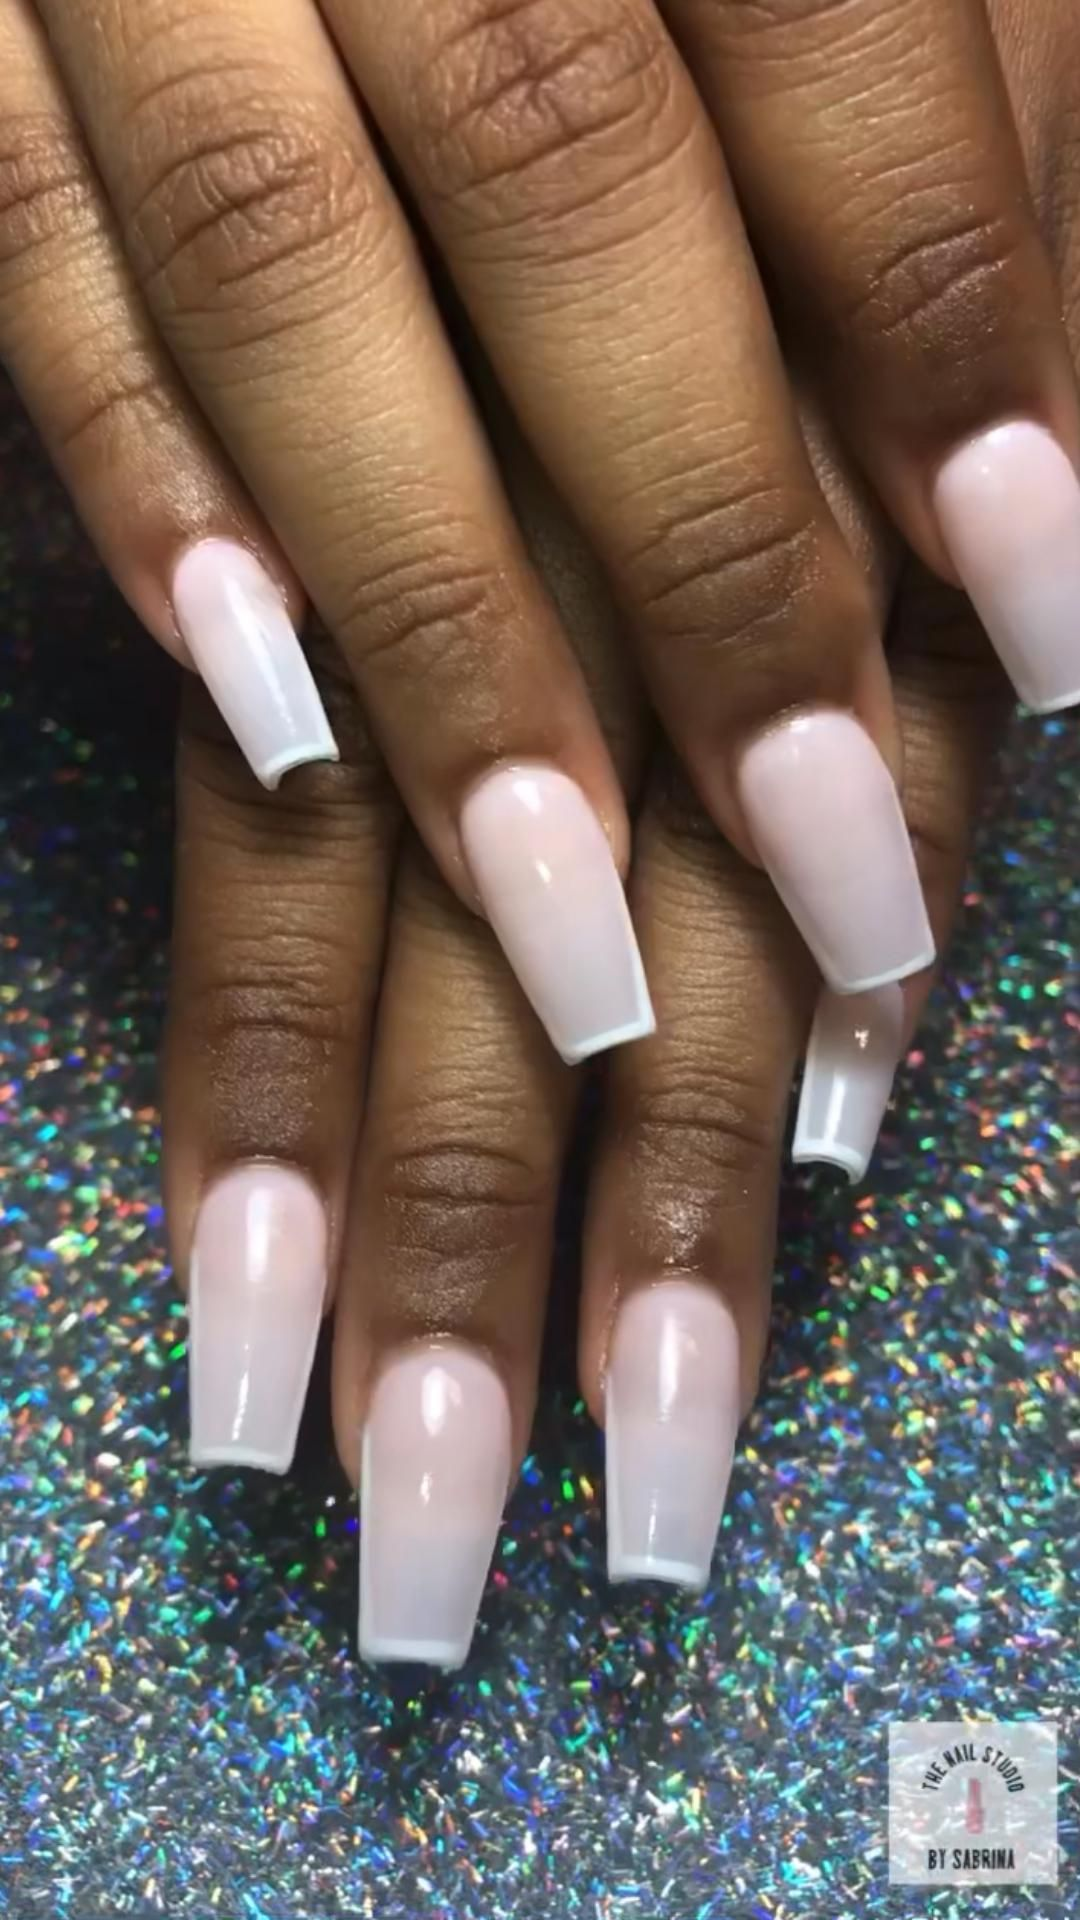 Nude nails🤍